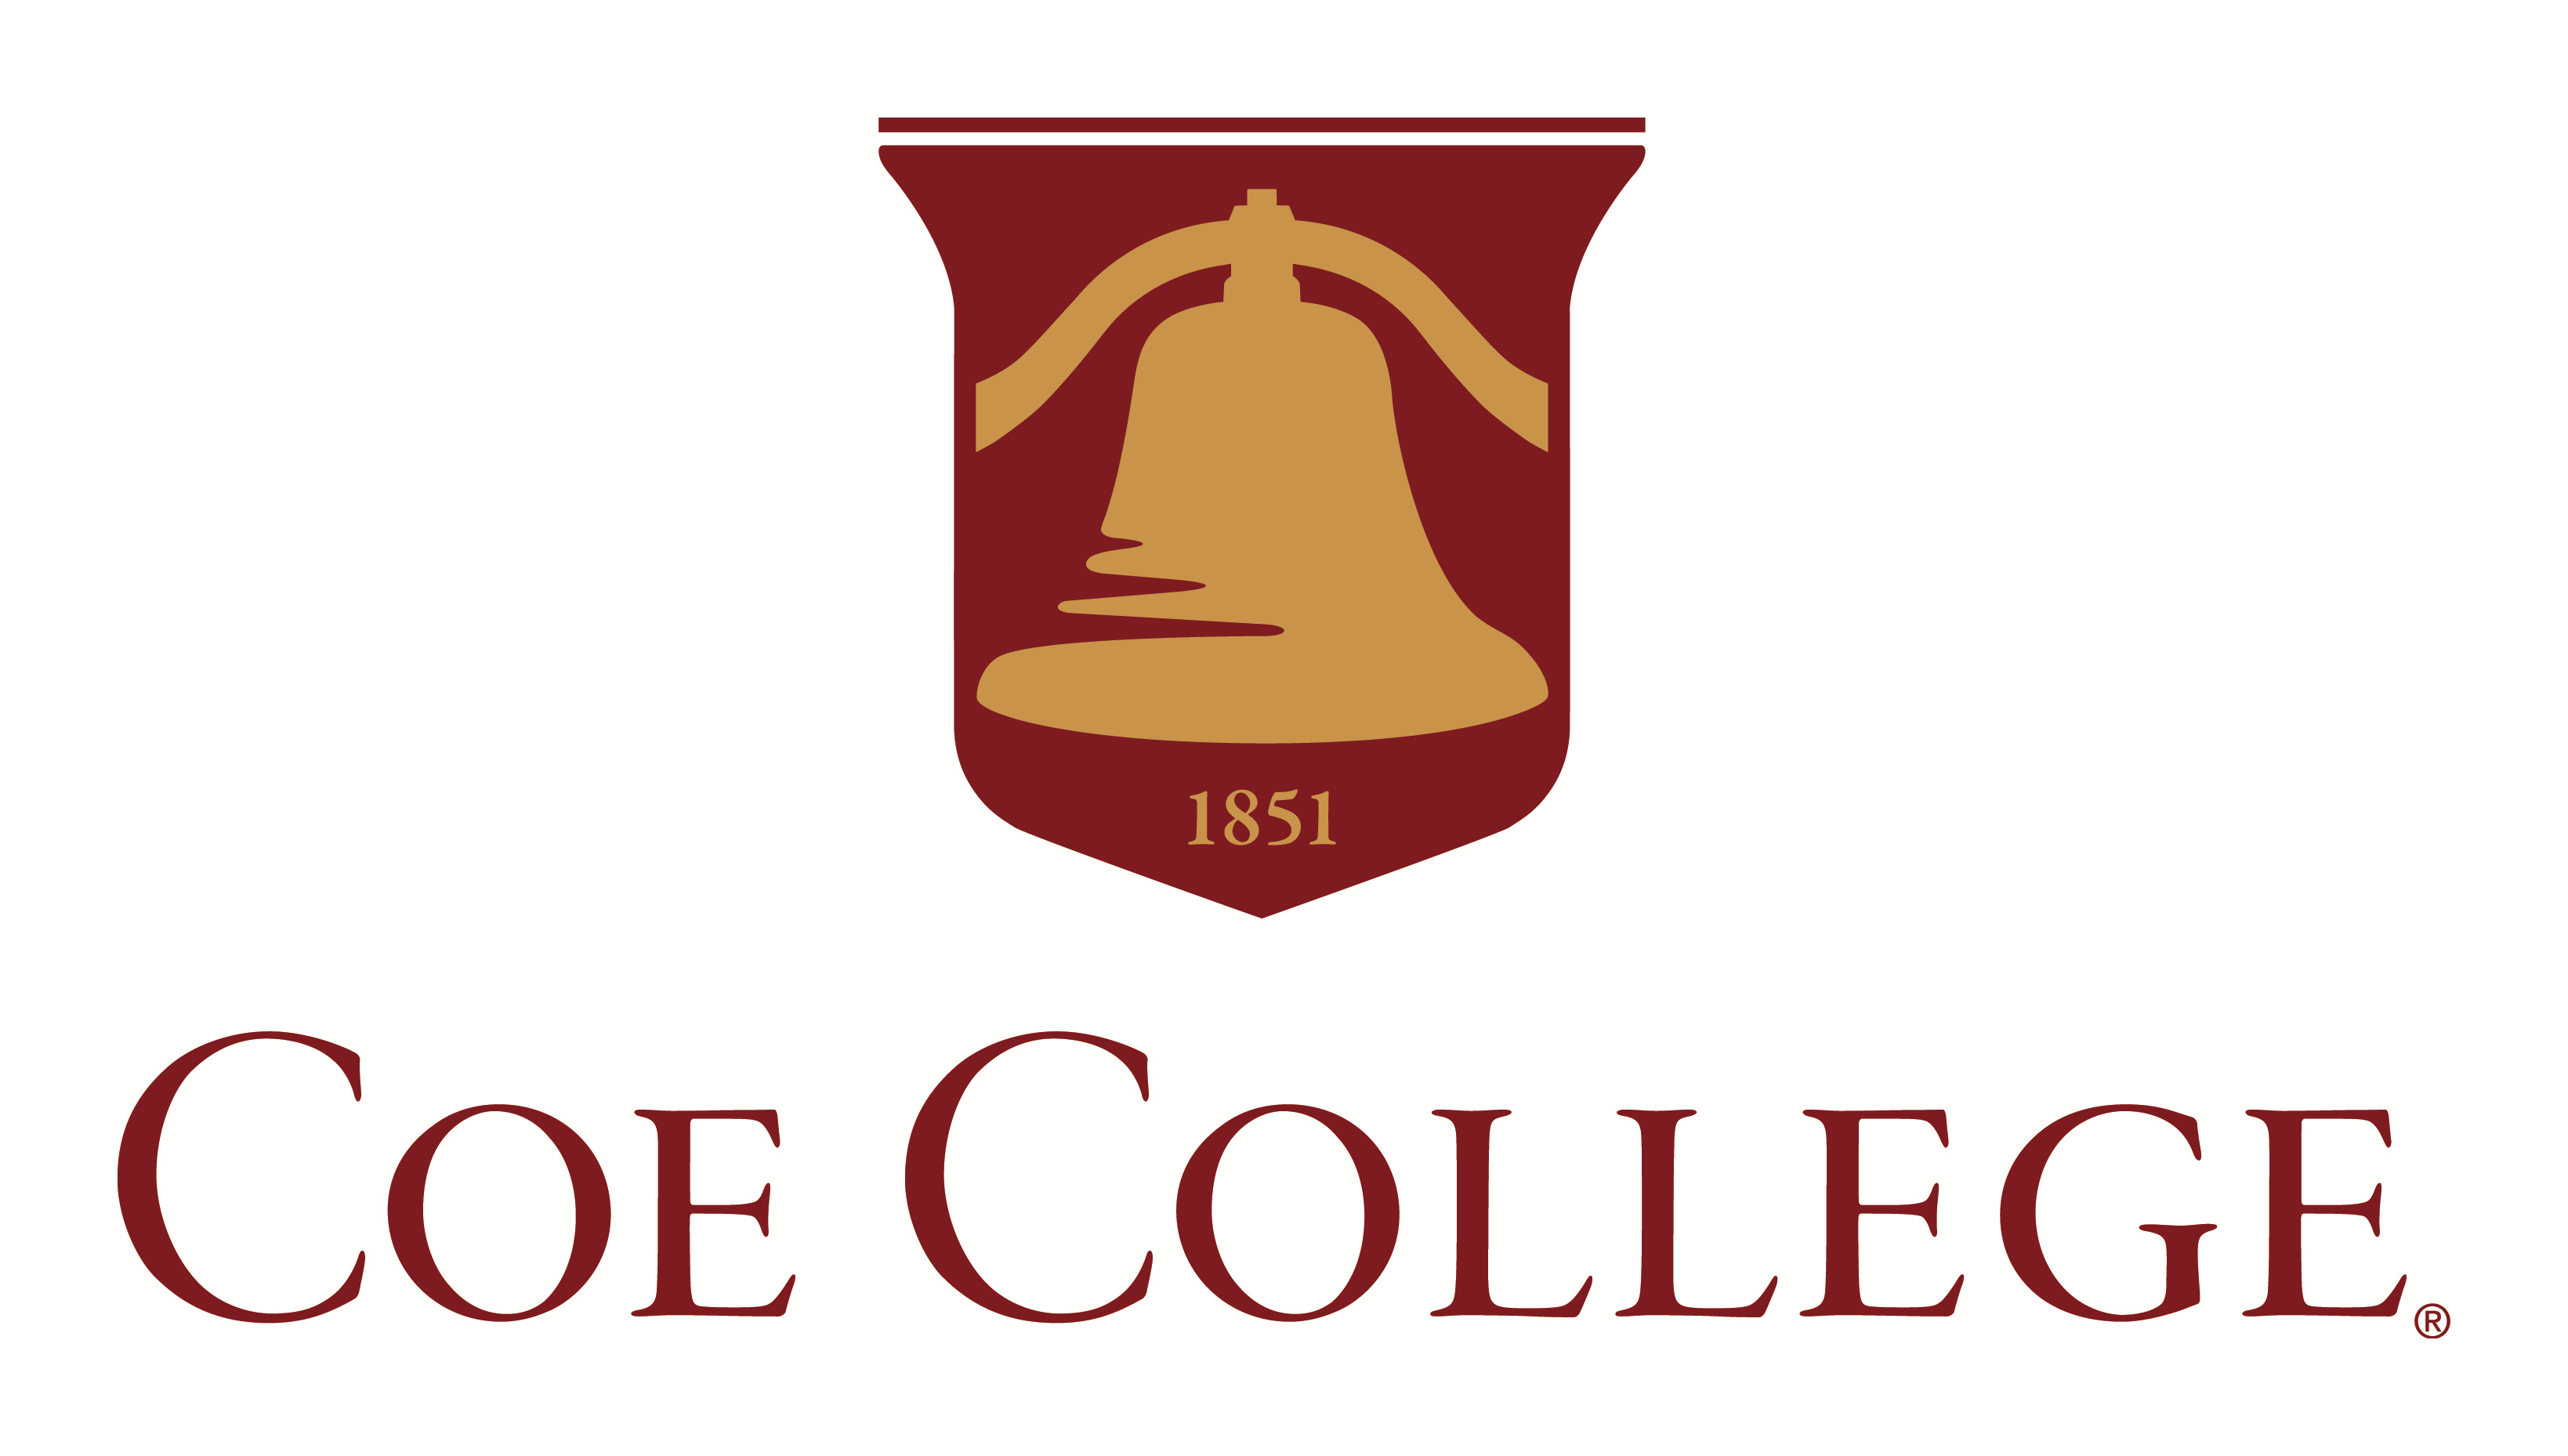 Callisto is an official partner of Coe College